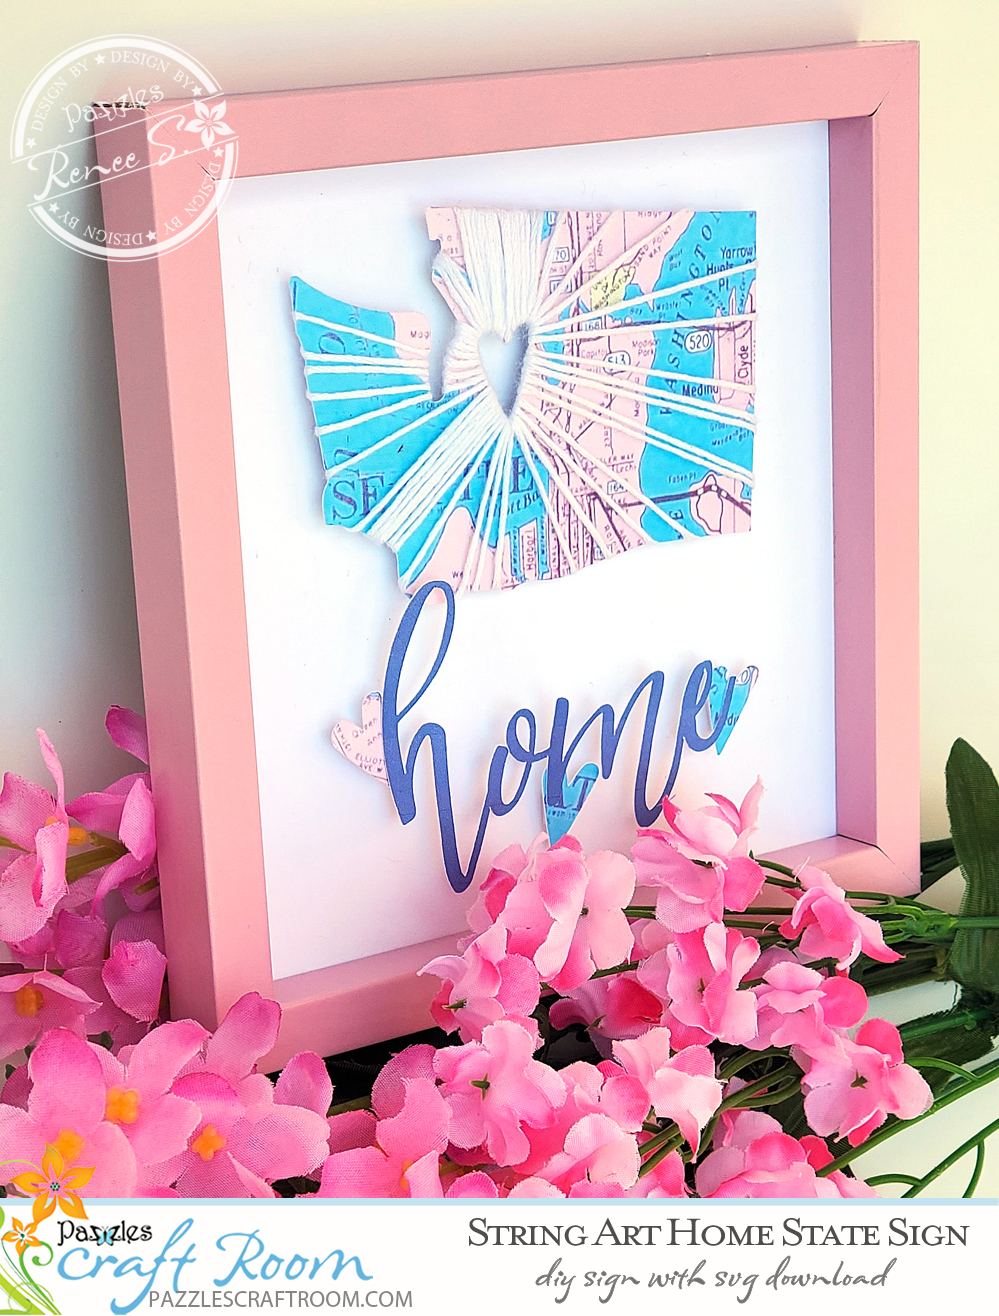 Pazzles DIY String Art Home State Sign with instant SVG download. Instant SVG download compatible with all major electronic cutters including Pazzles Inspiration, Cricut, and Silhouette Cameo. Design by Renee Smart.